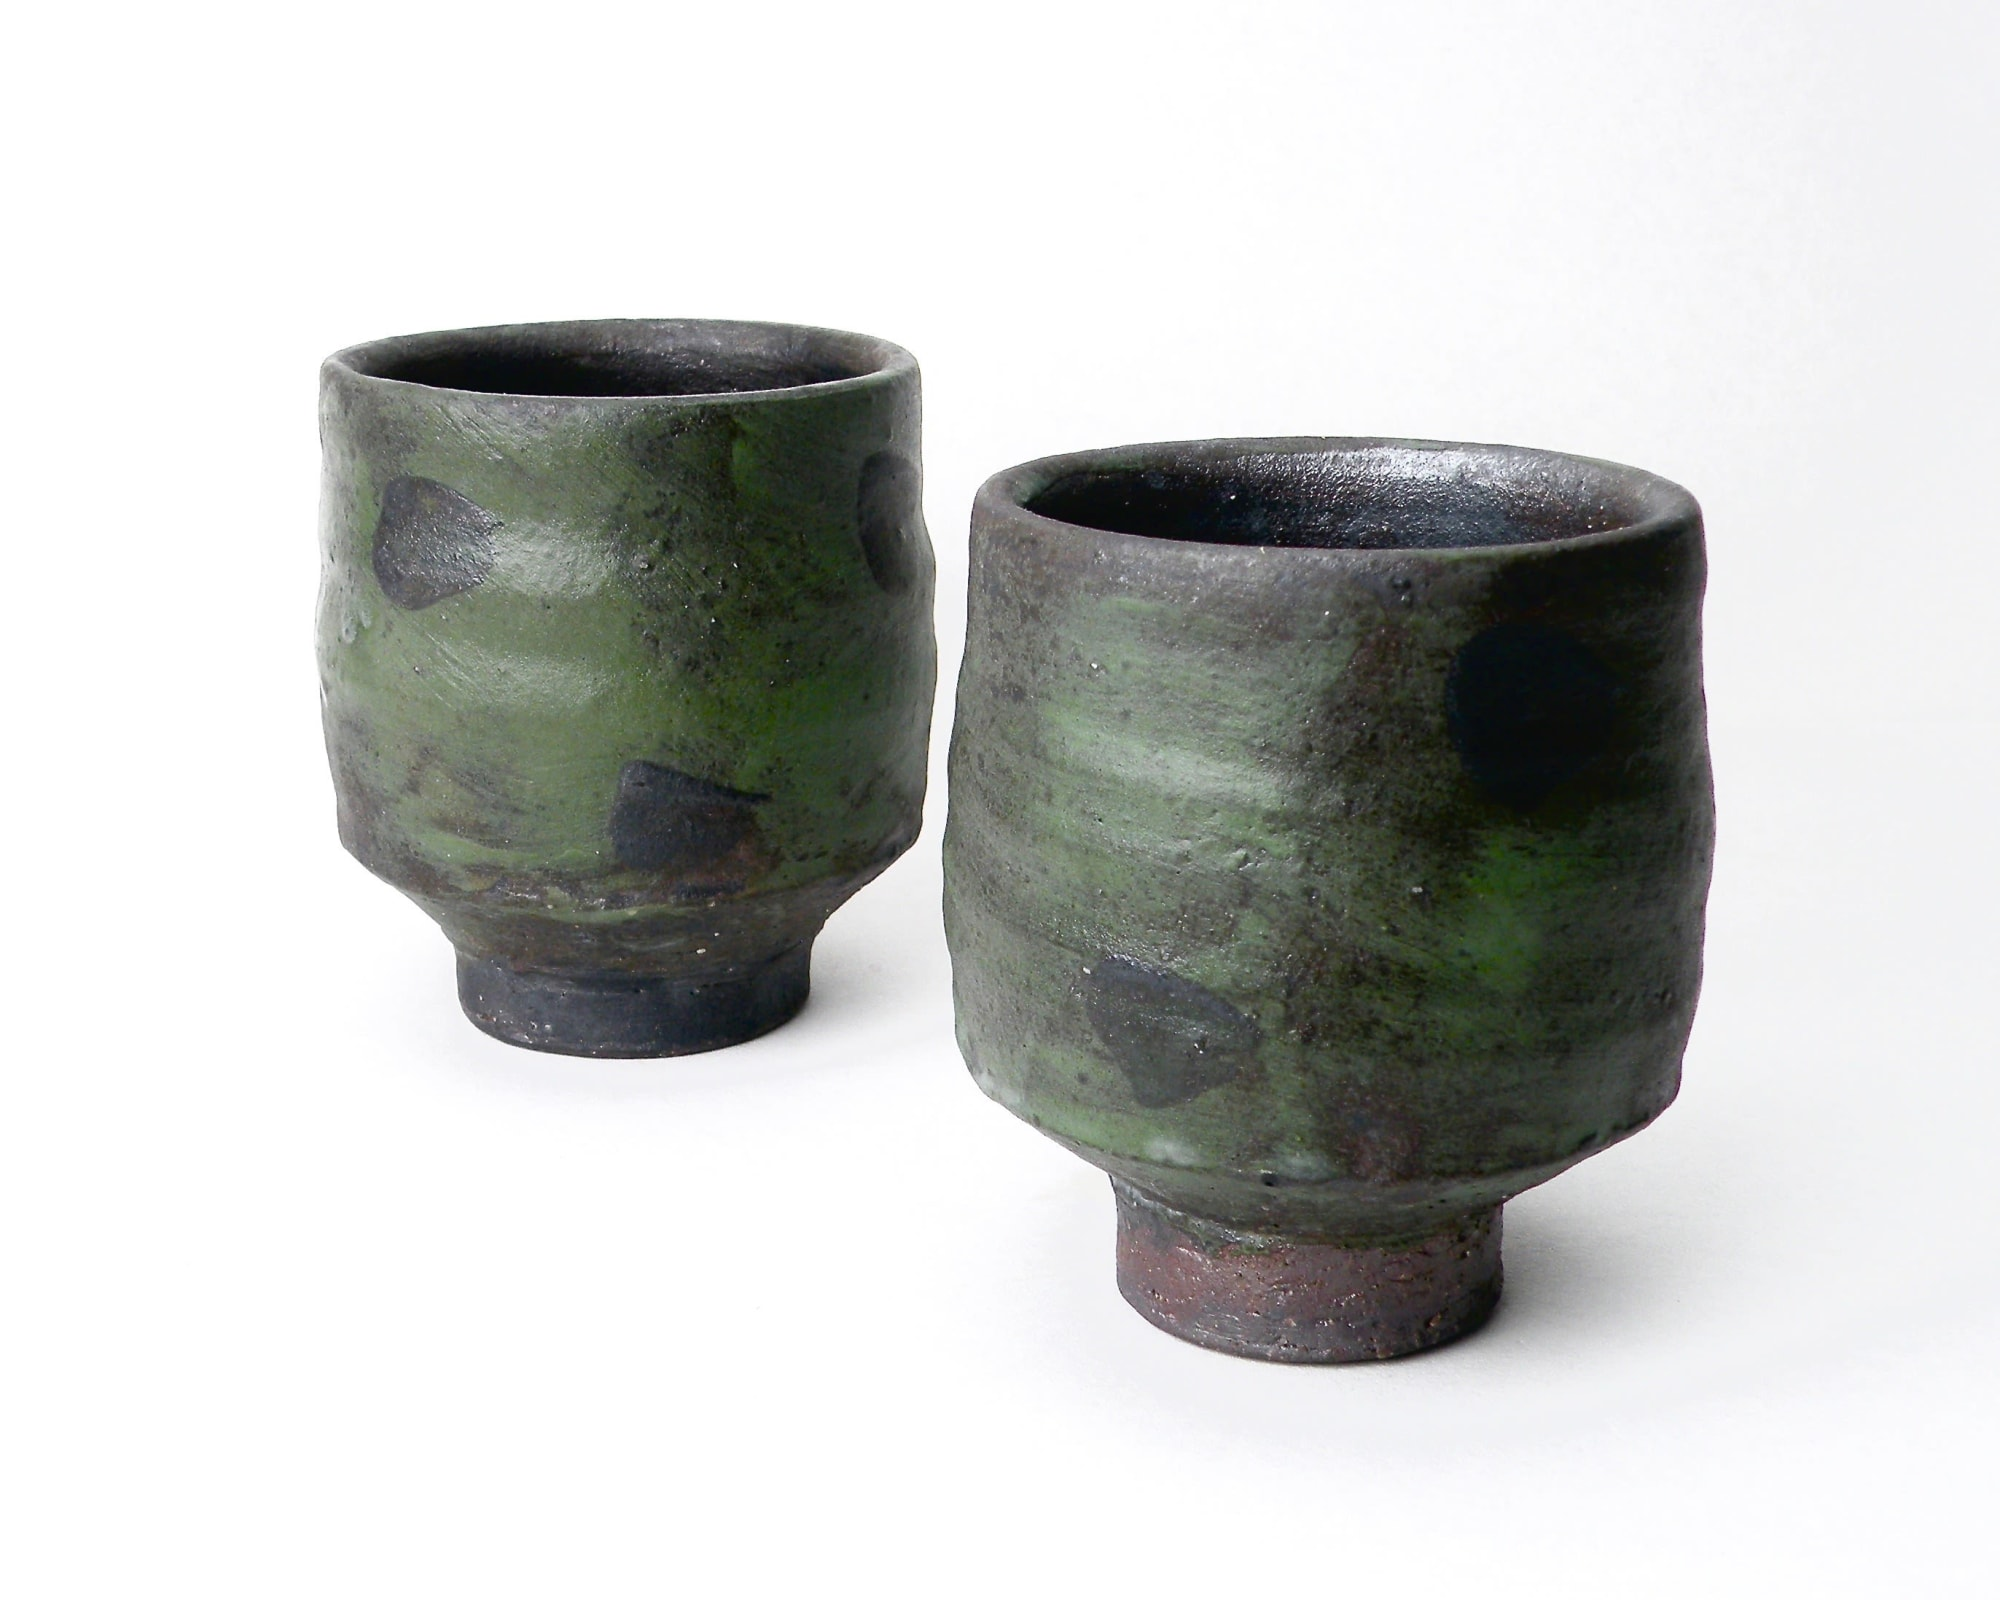 Vases & Vessels by HARTSOE POTTERY seen at Penland School of Crafts, Bakersville - ceramic